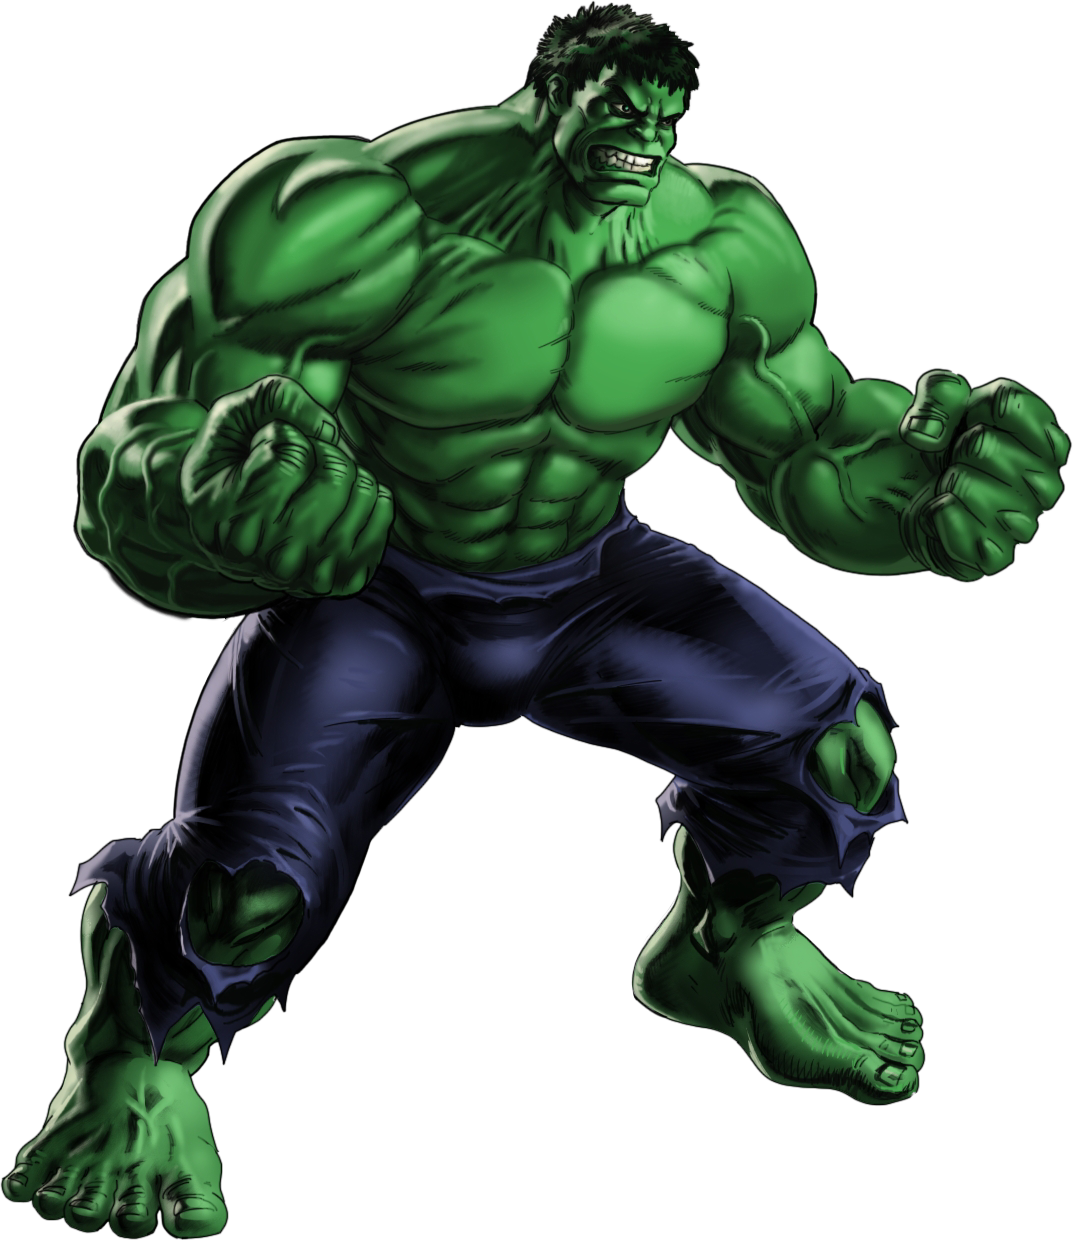 It's just an image of Influential Incredible Hulk Clipart